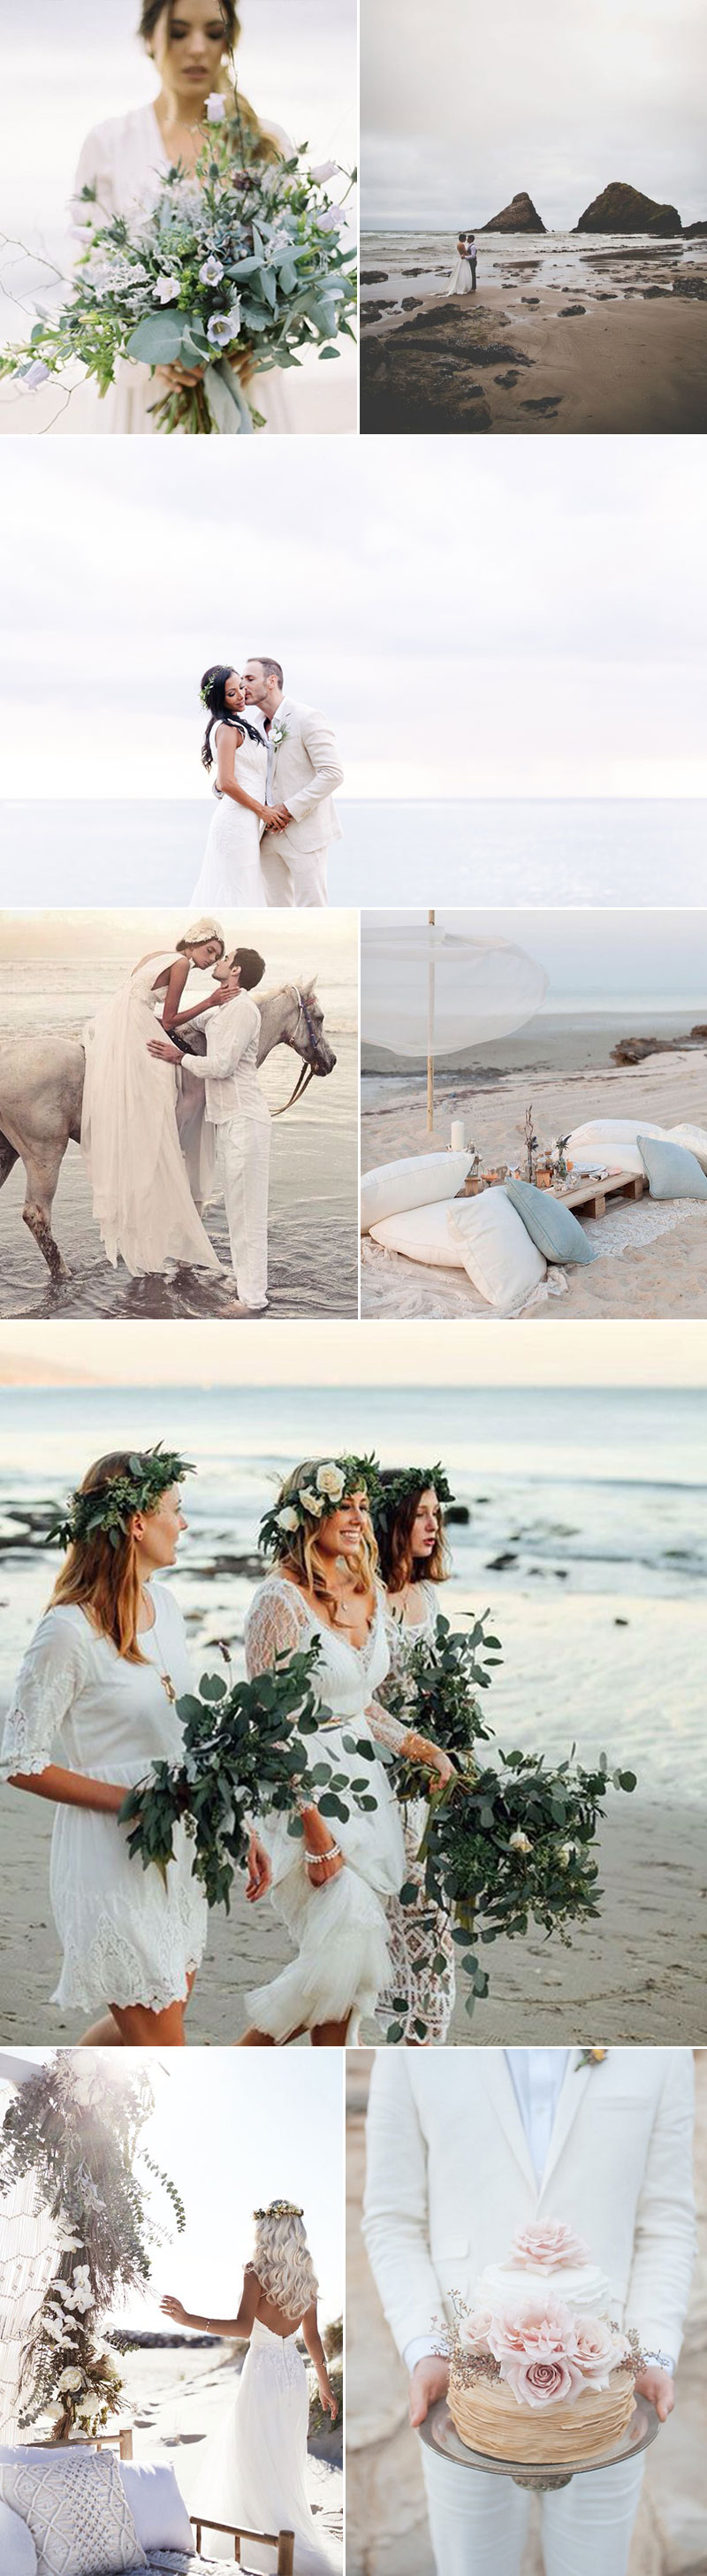 Ivory Beach Wedding